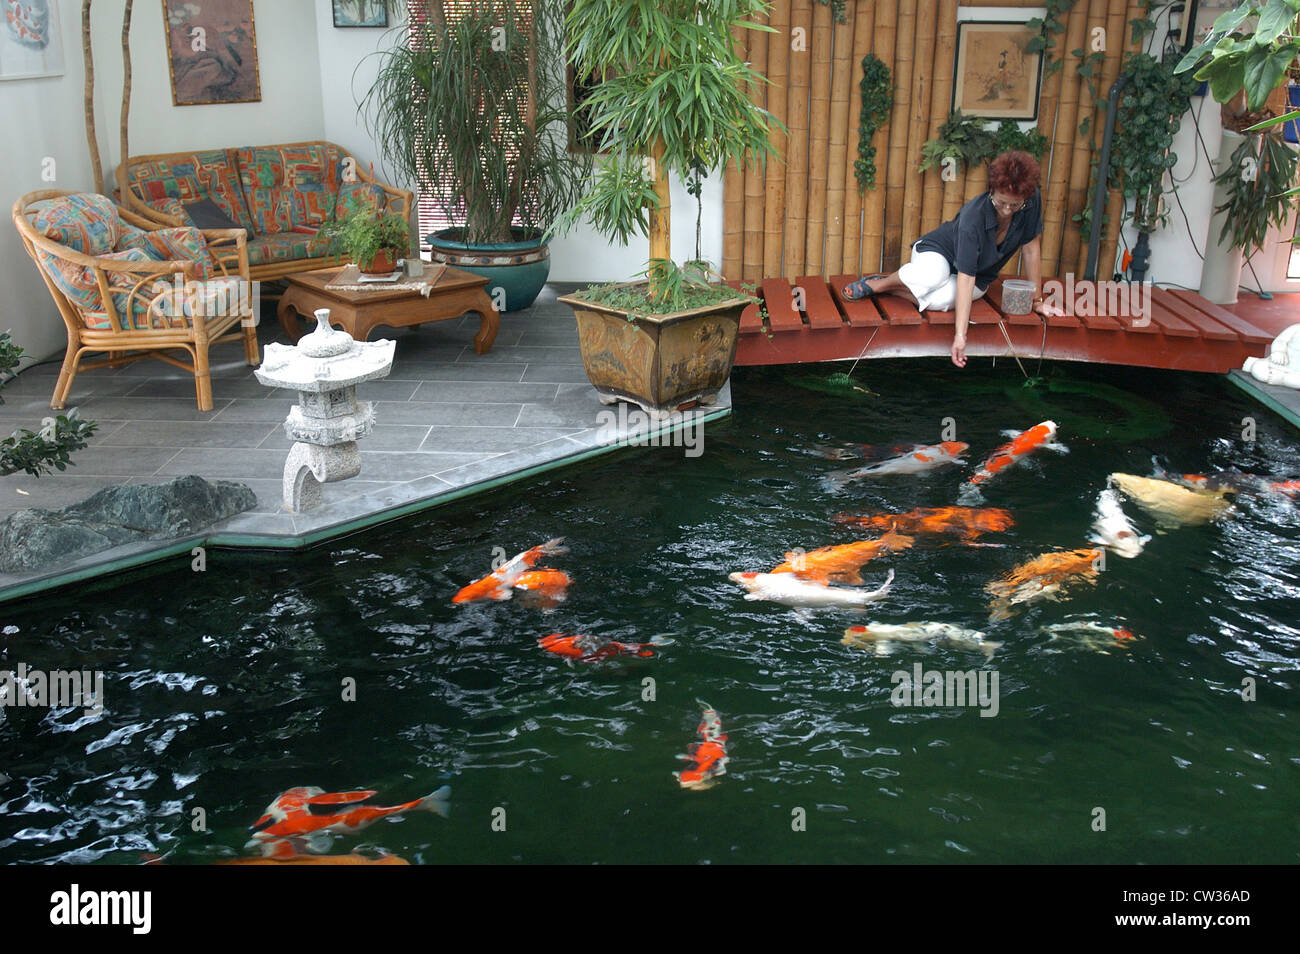 Indoor koi pond in reigoldswil switzerland stock photo for Pool with koi pond